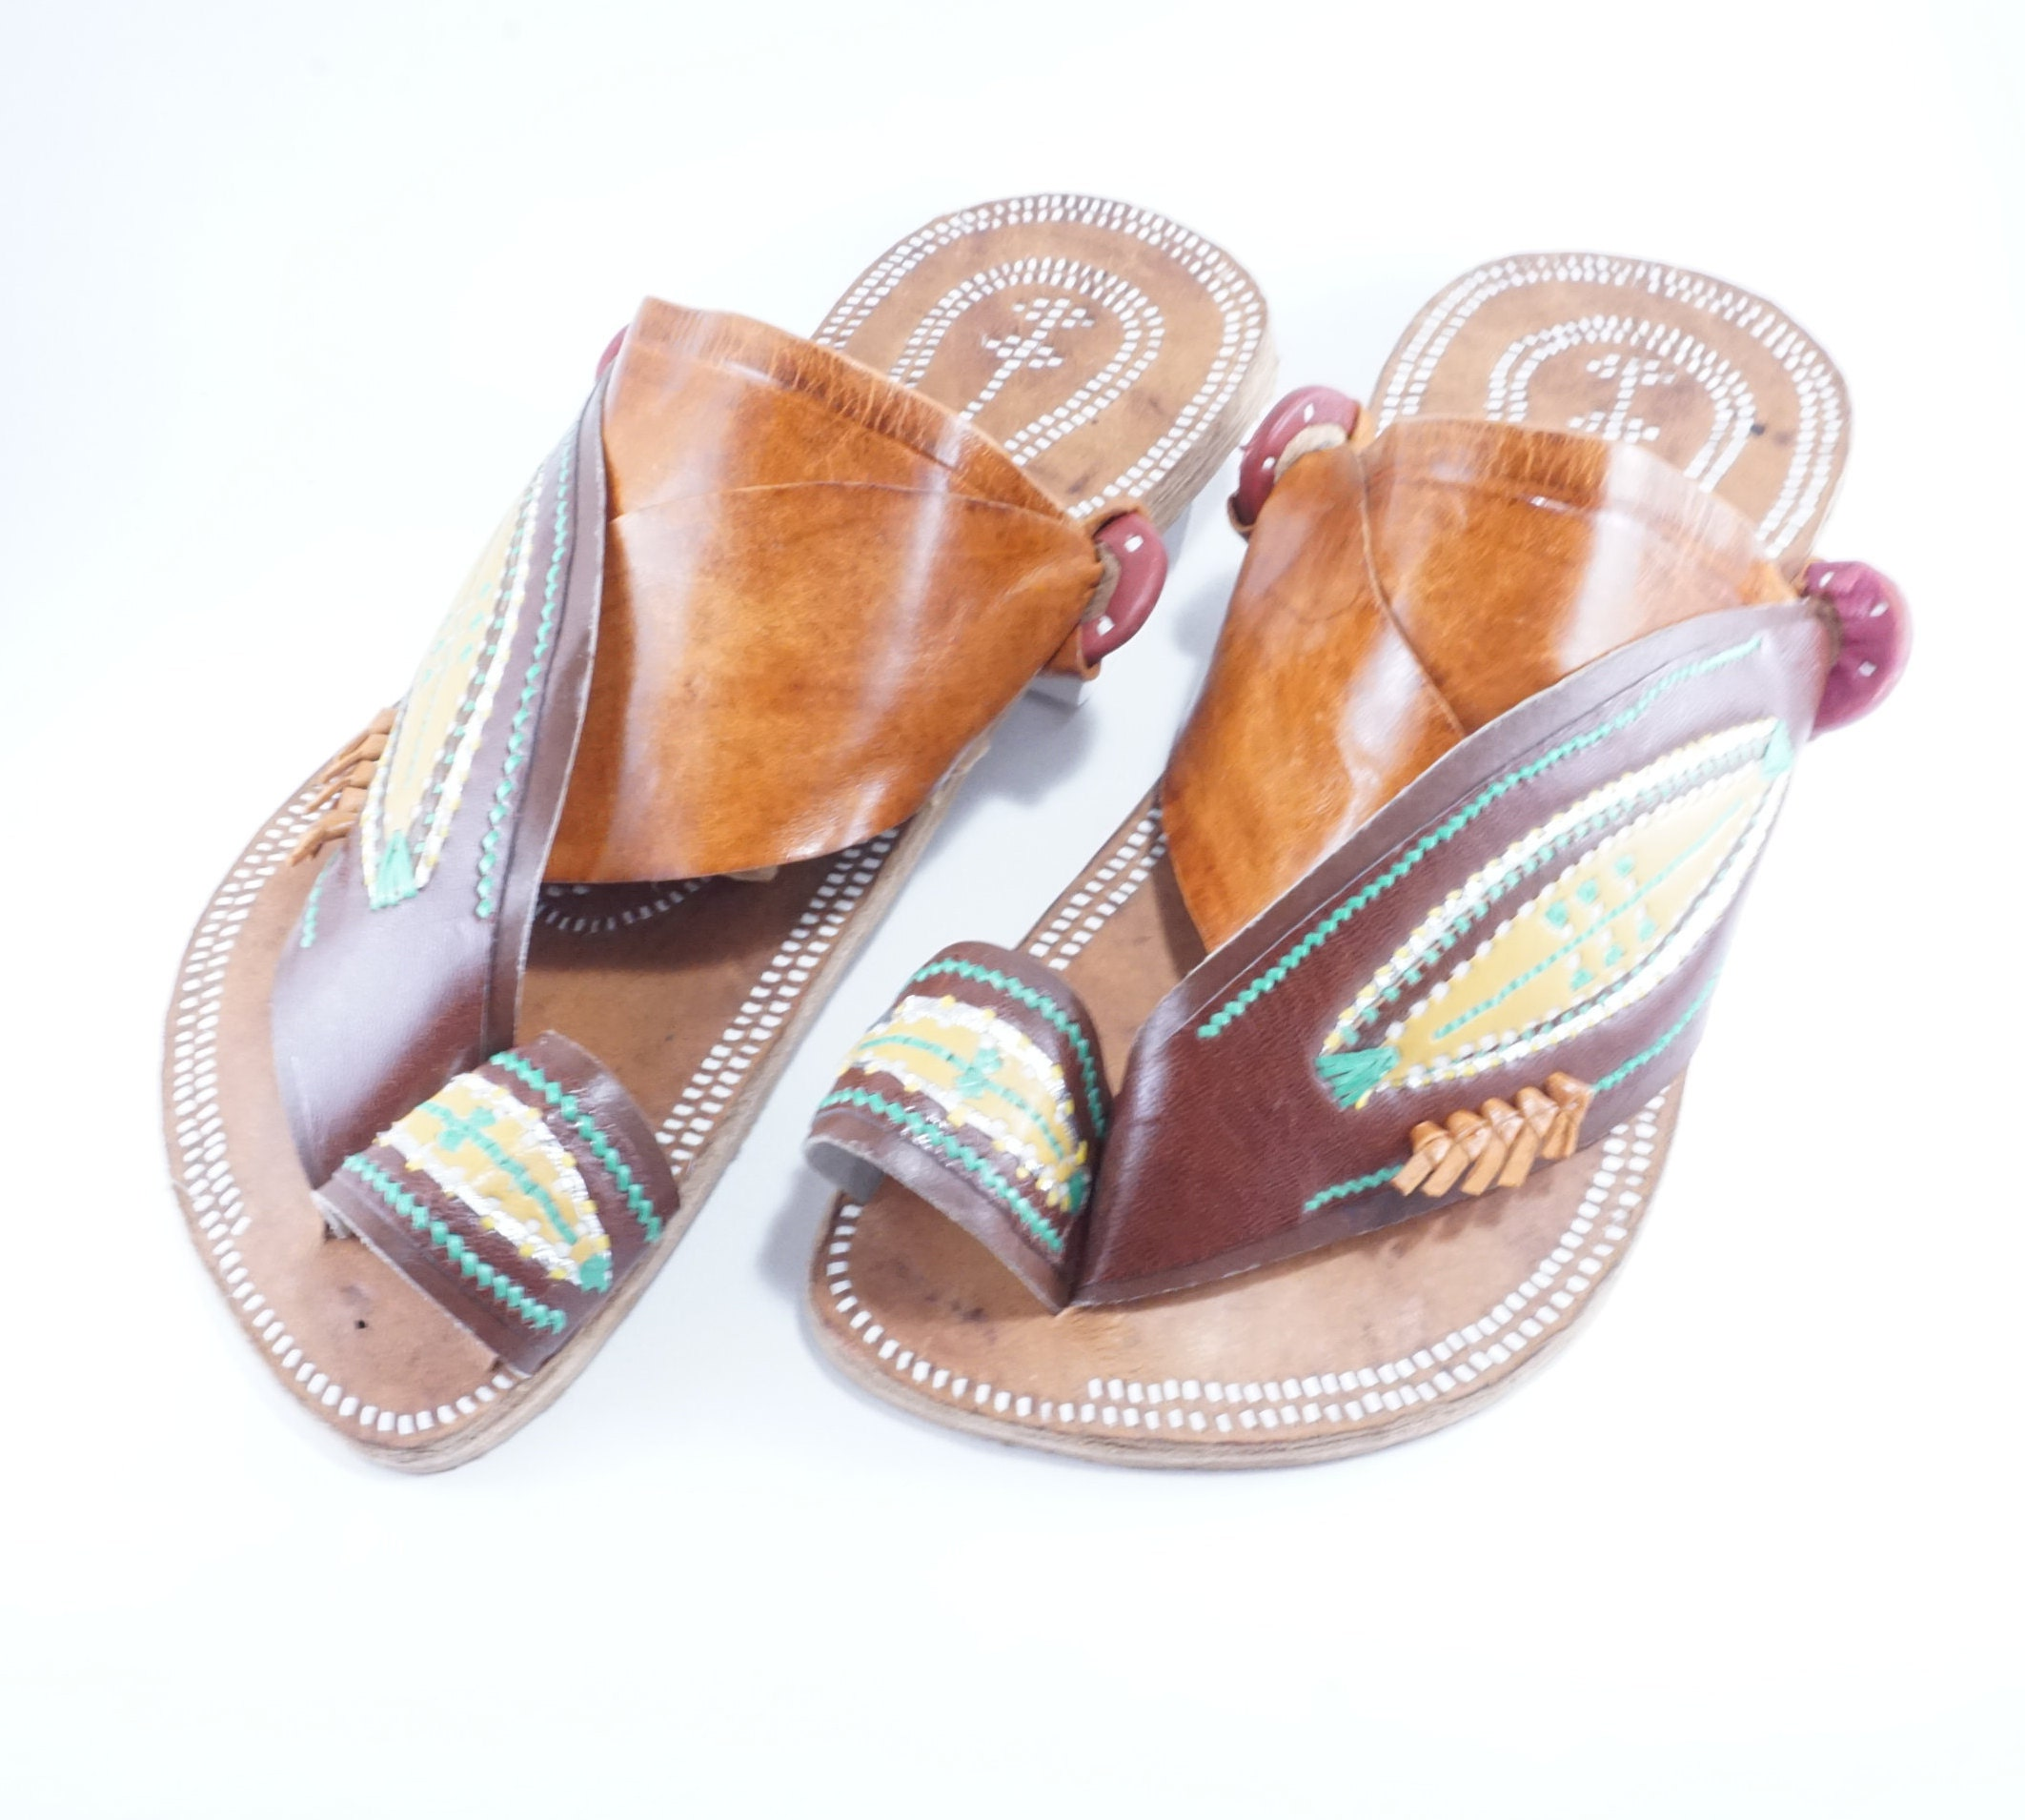 Traditional high quality handmade leather sandal by